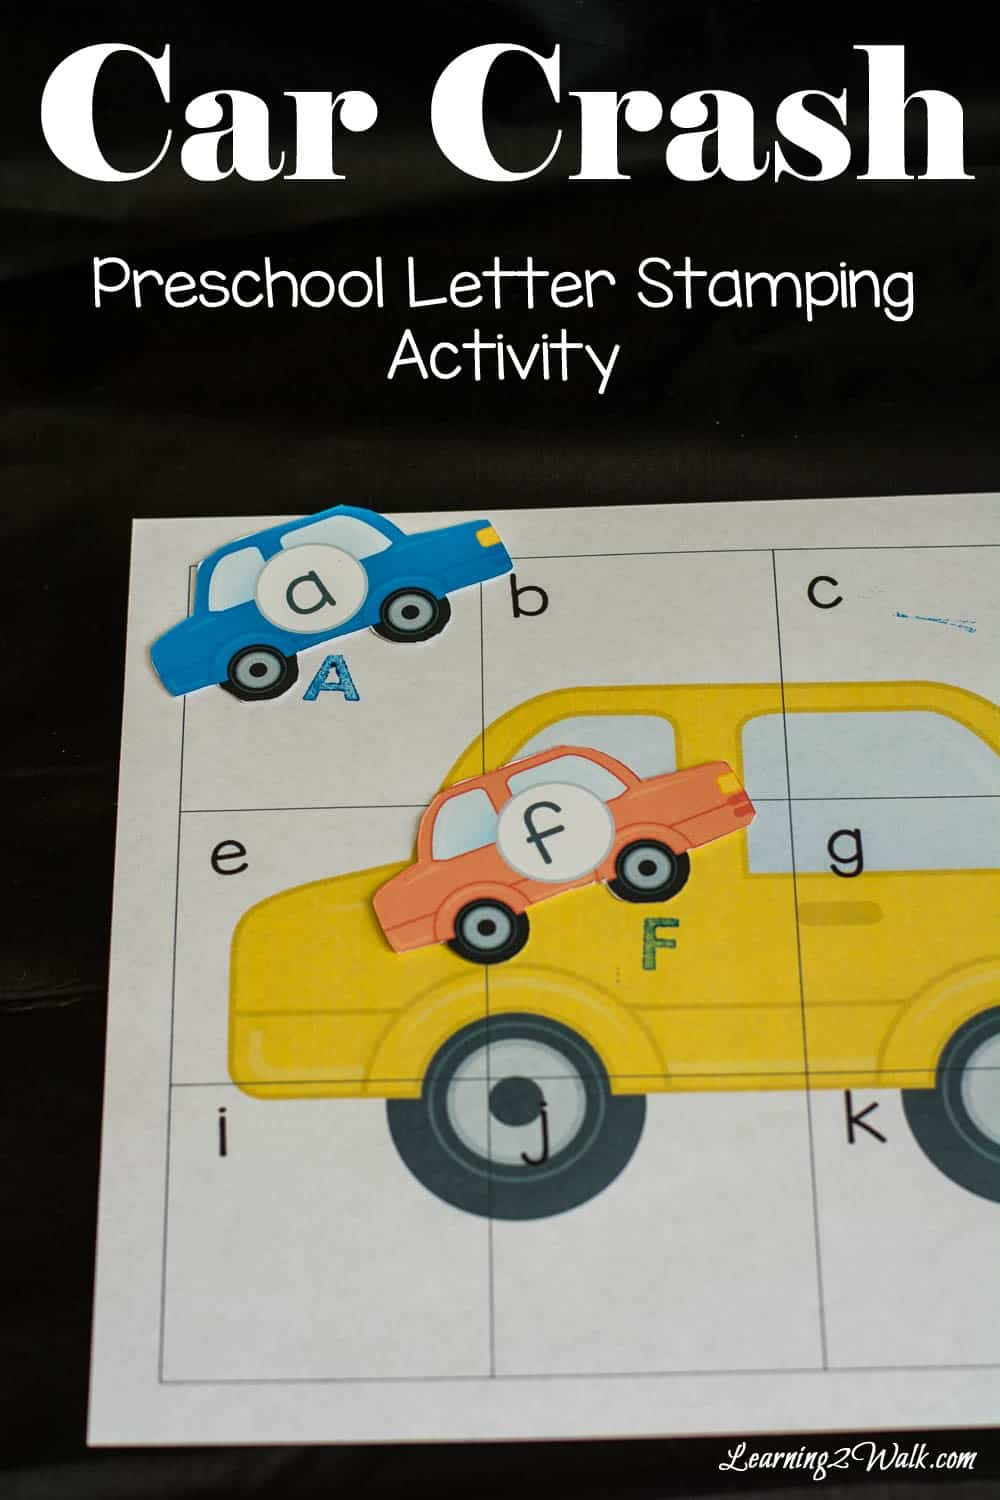 Car Crash Preschool Letter Stamping Activity